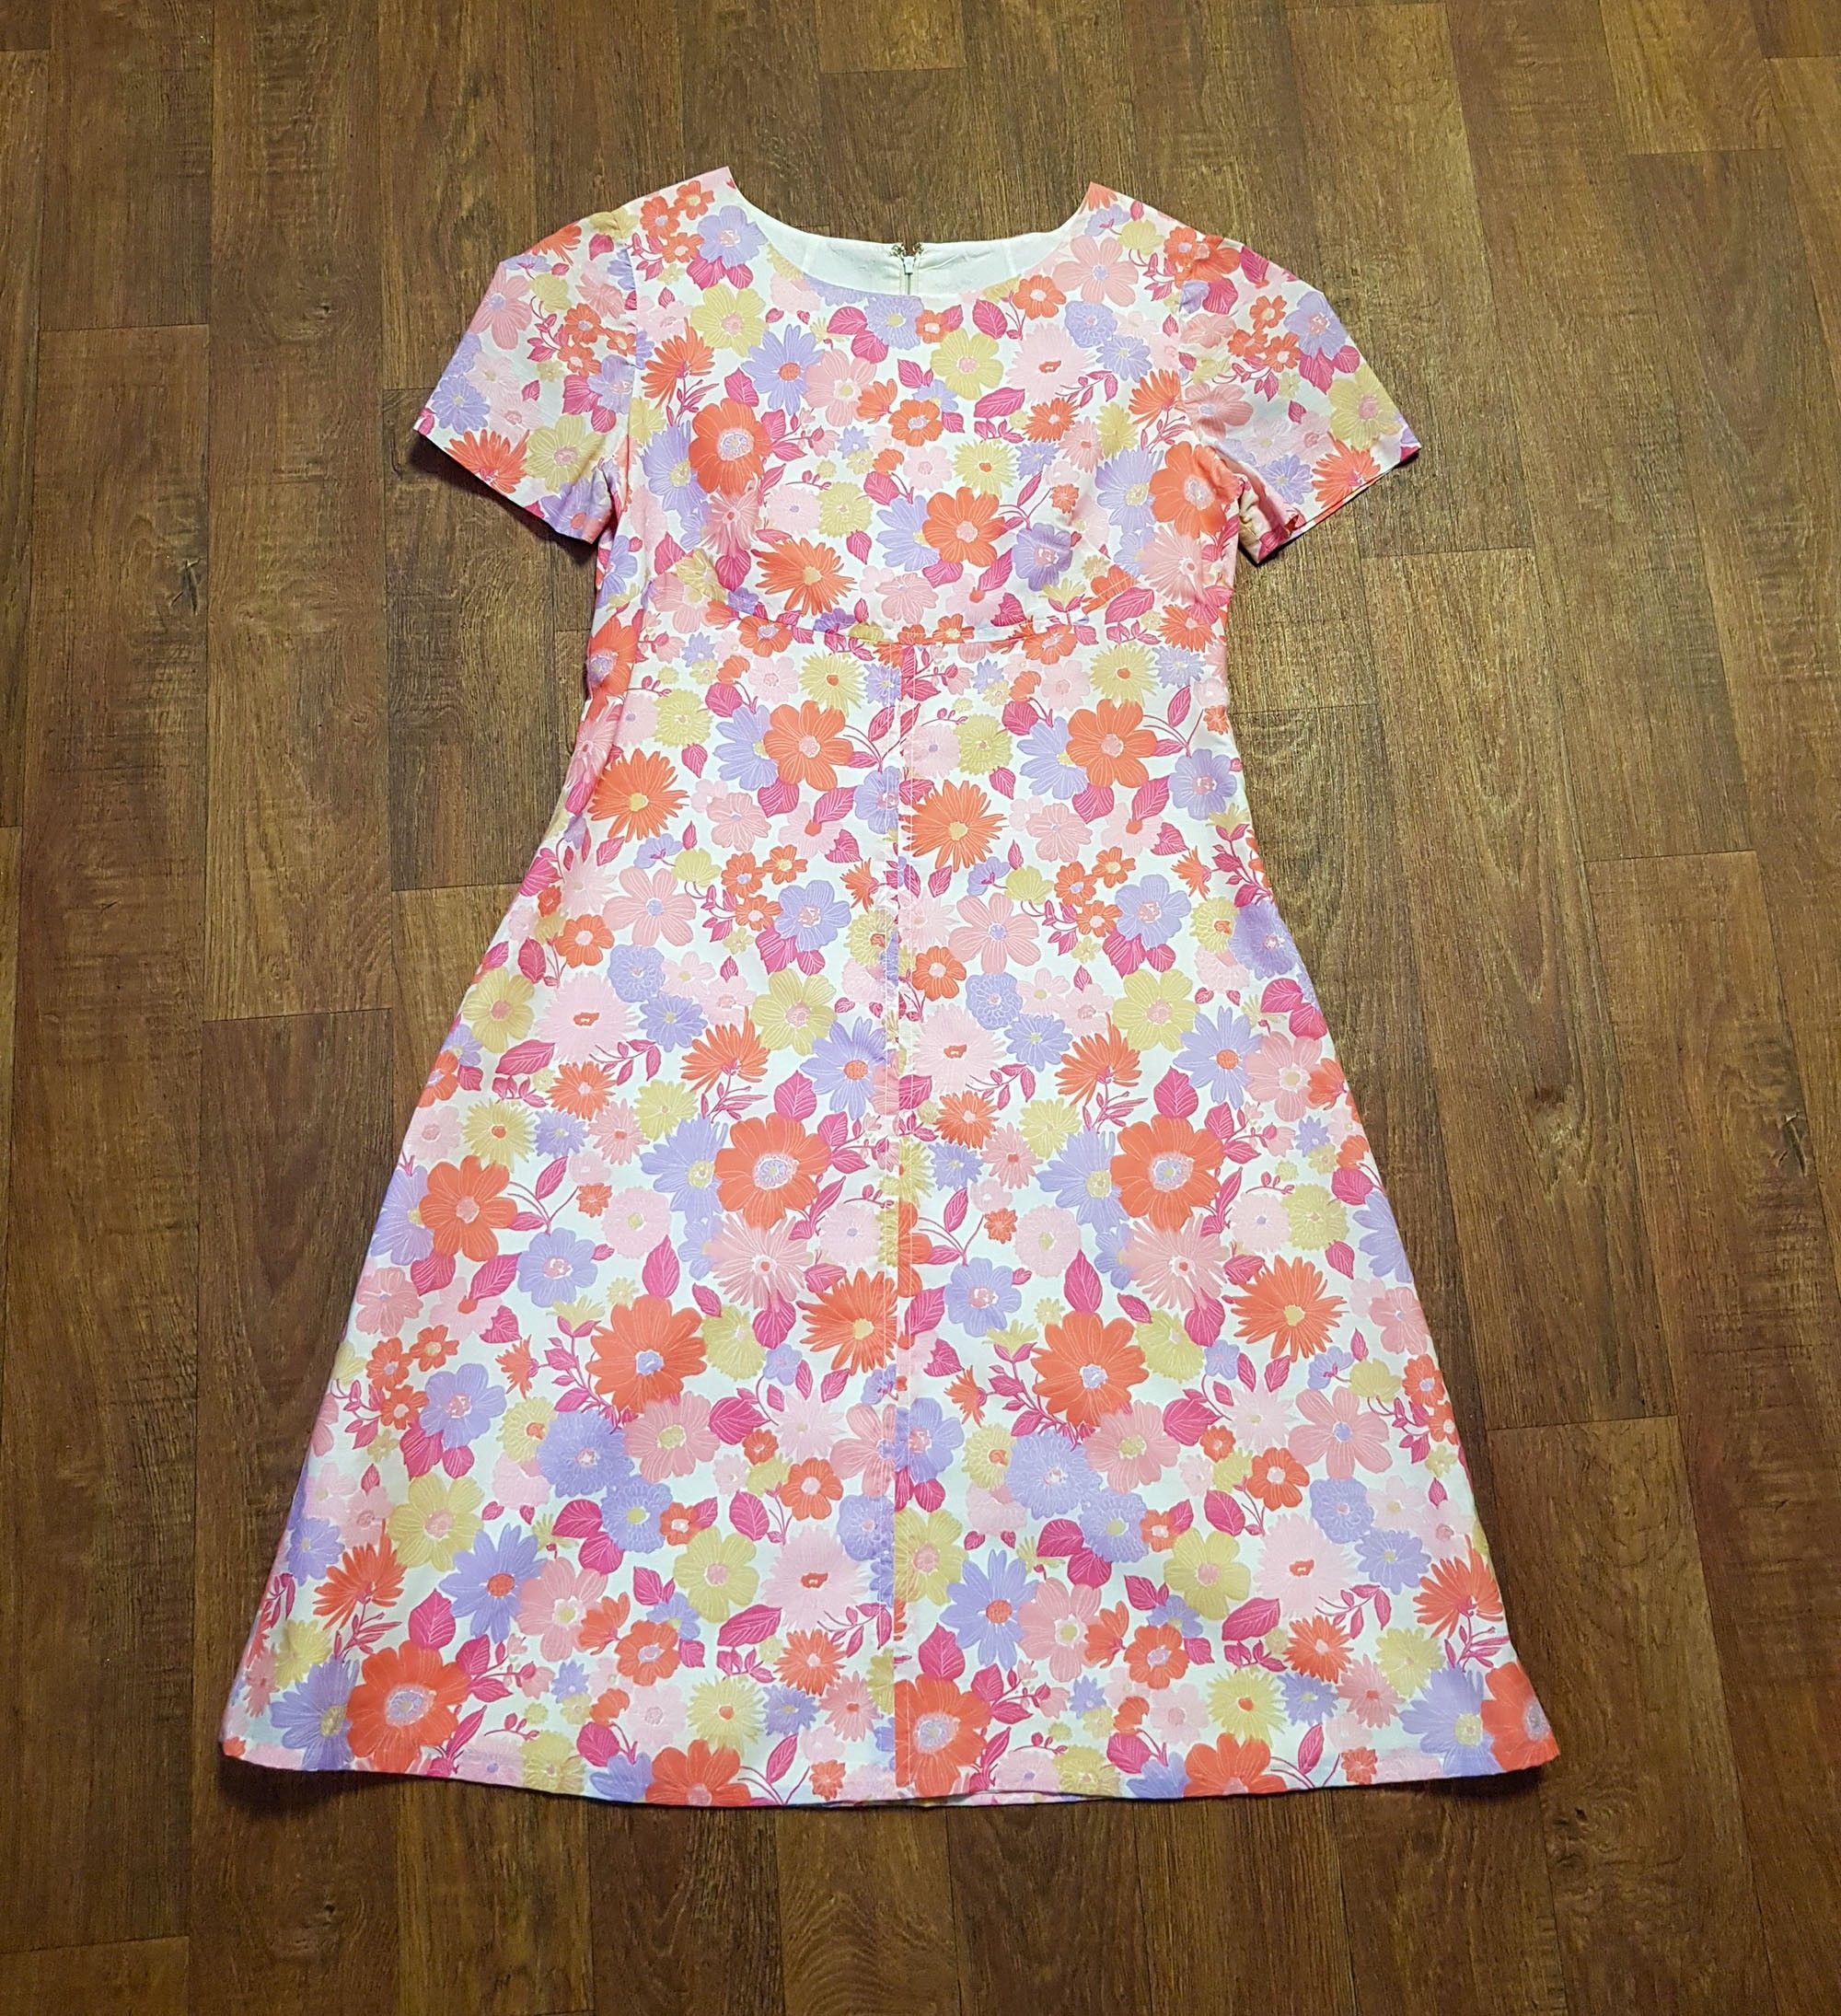 1960s Vintage Pastel Floral Shift Dress UK Size 16